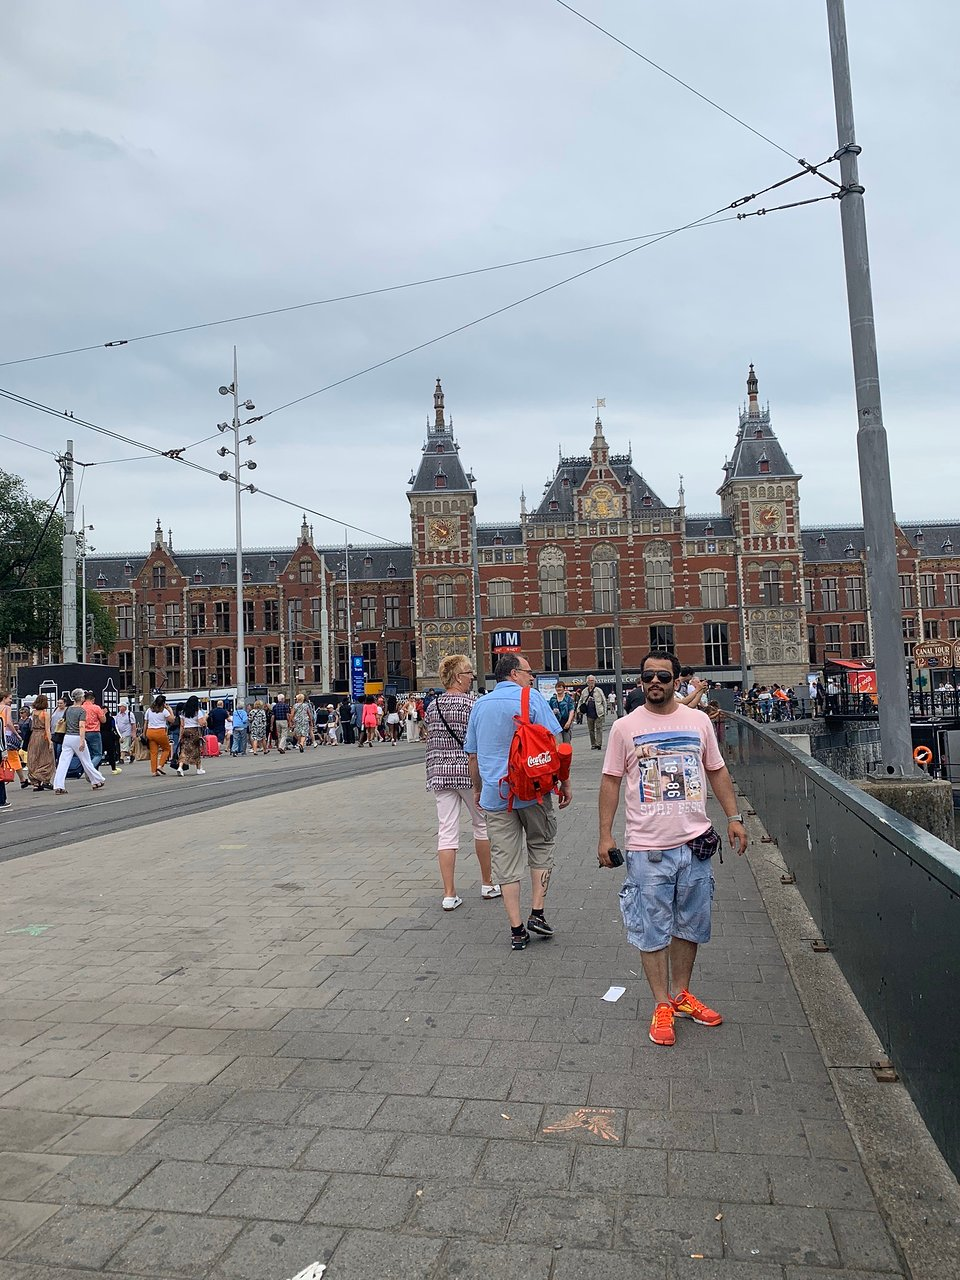 I Amsterdam Visitor Centre 2020 All You Need to Know